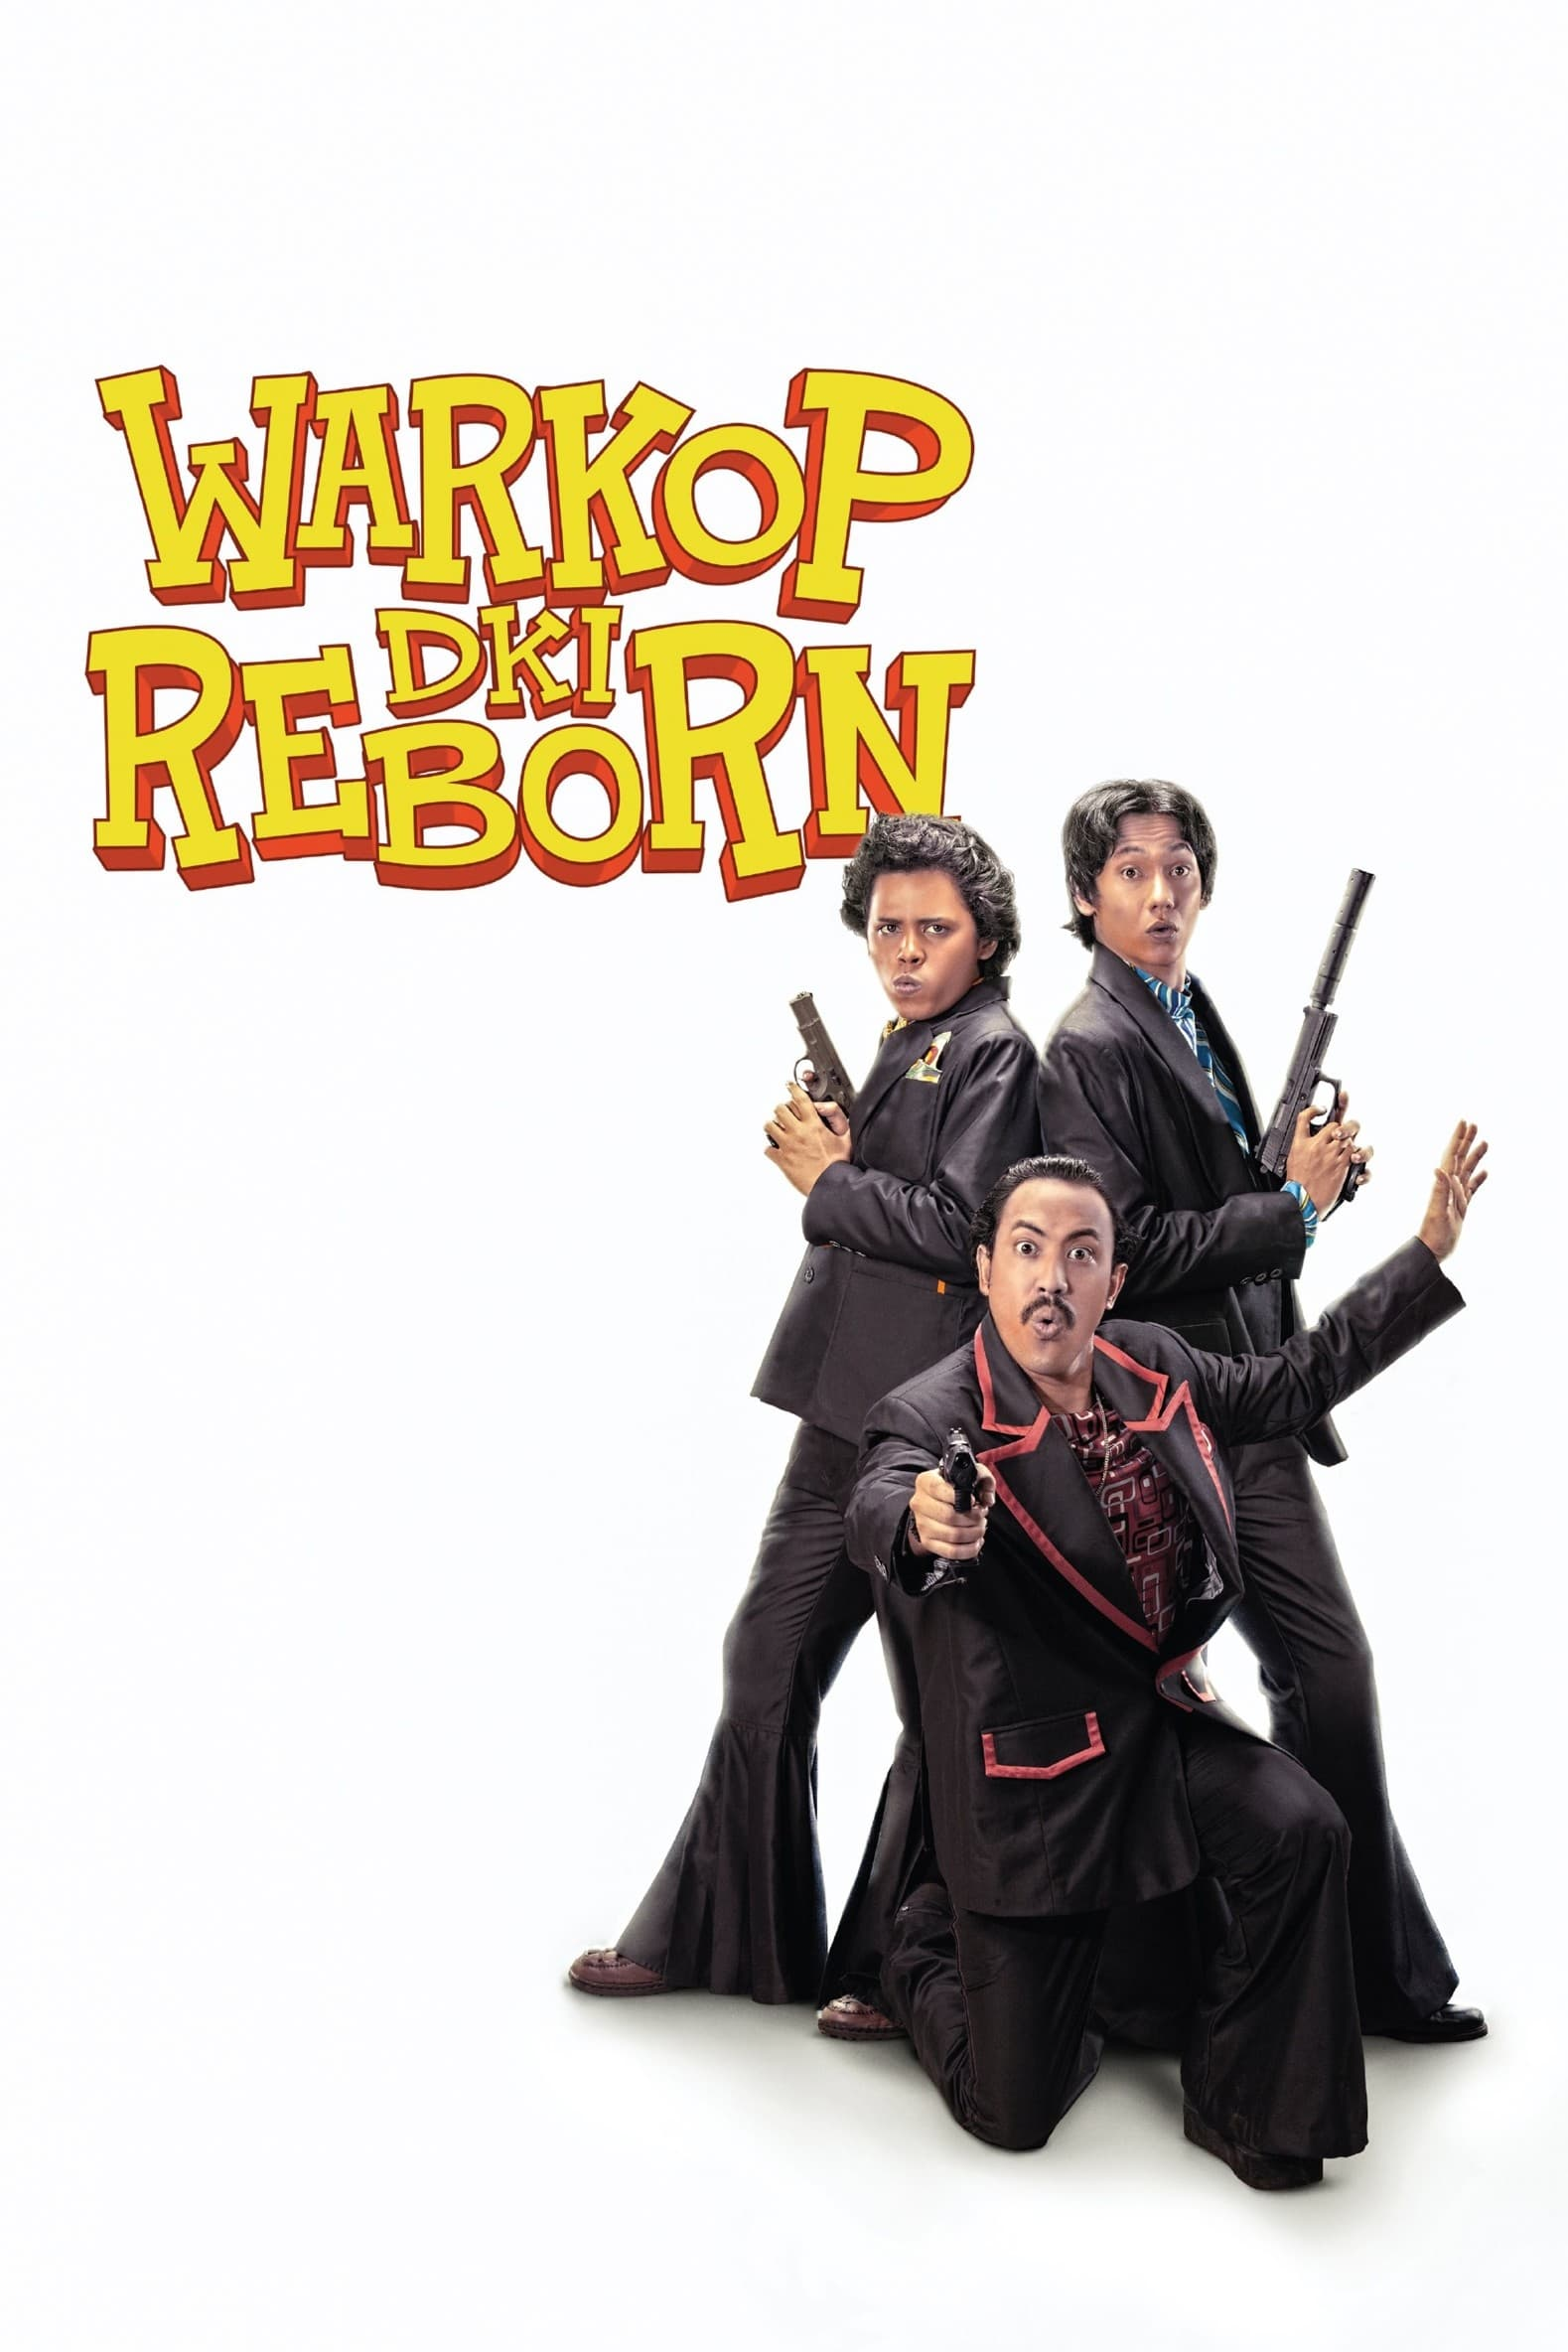 Streaming Warkop Dki Reborn Part 2 : streaming, warkop, reborn, Warkop, Reborn, Indonesian, Movie, Streaming, Online, Watch